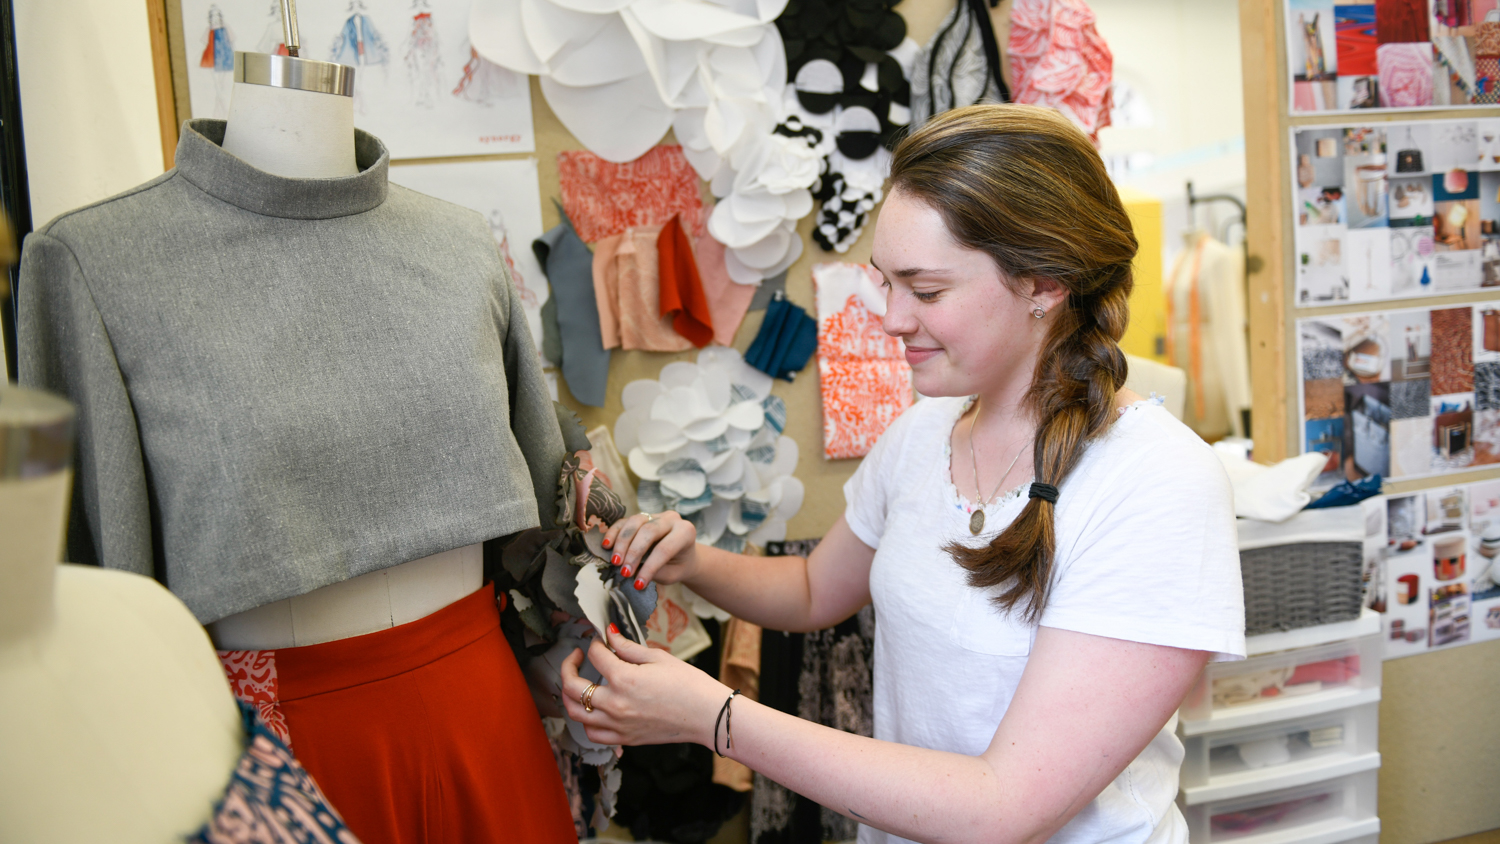 student working on art2wear collection